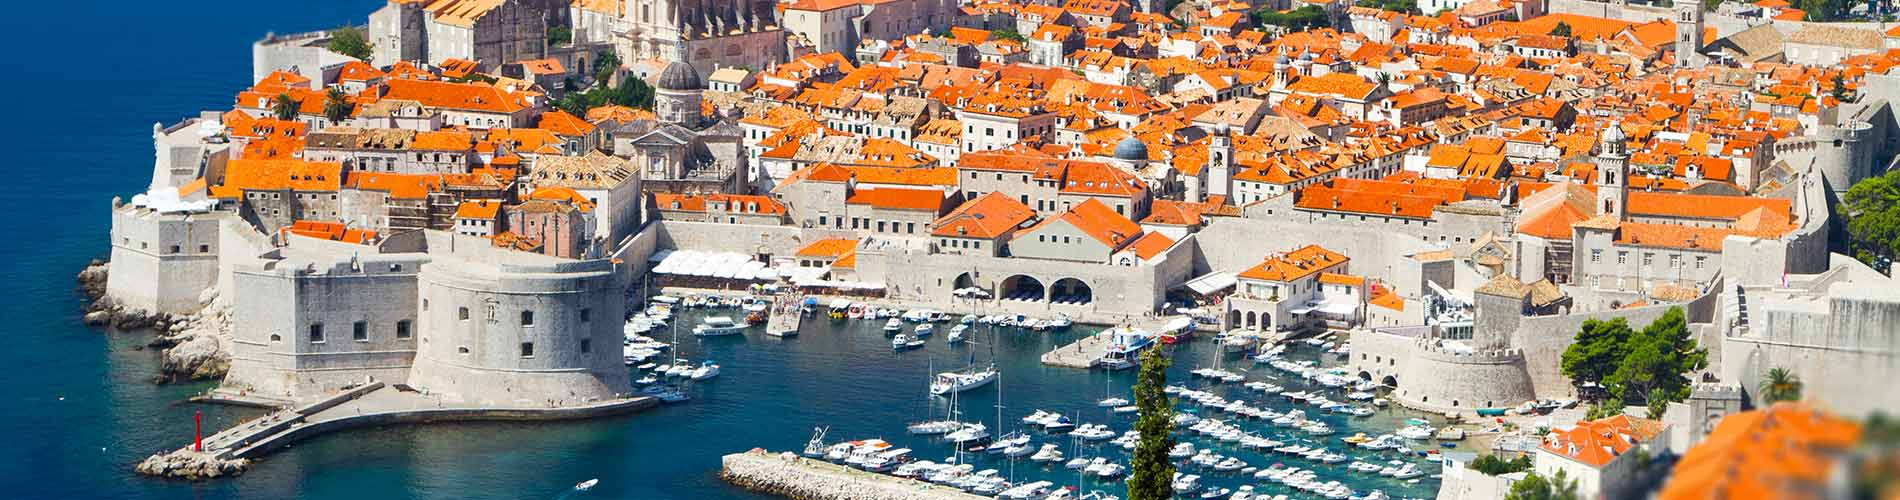 The Old Town of Dubrovnik, Croatia.jpg